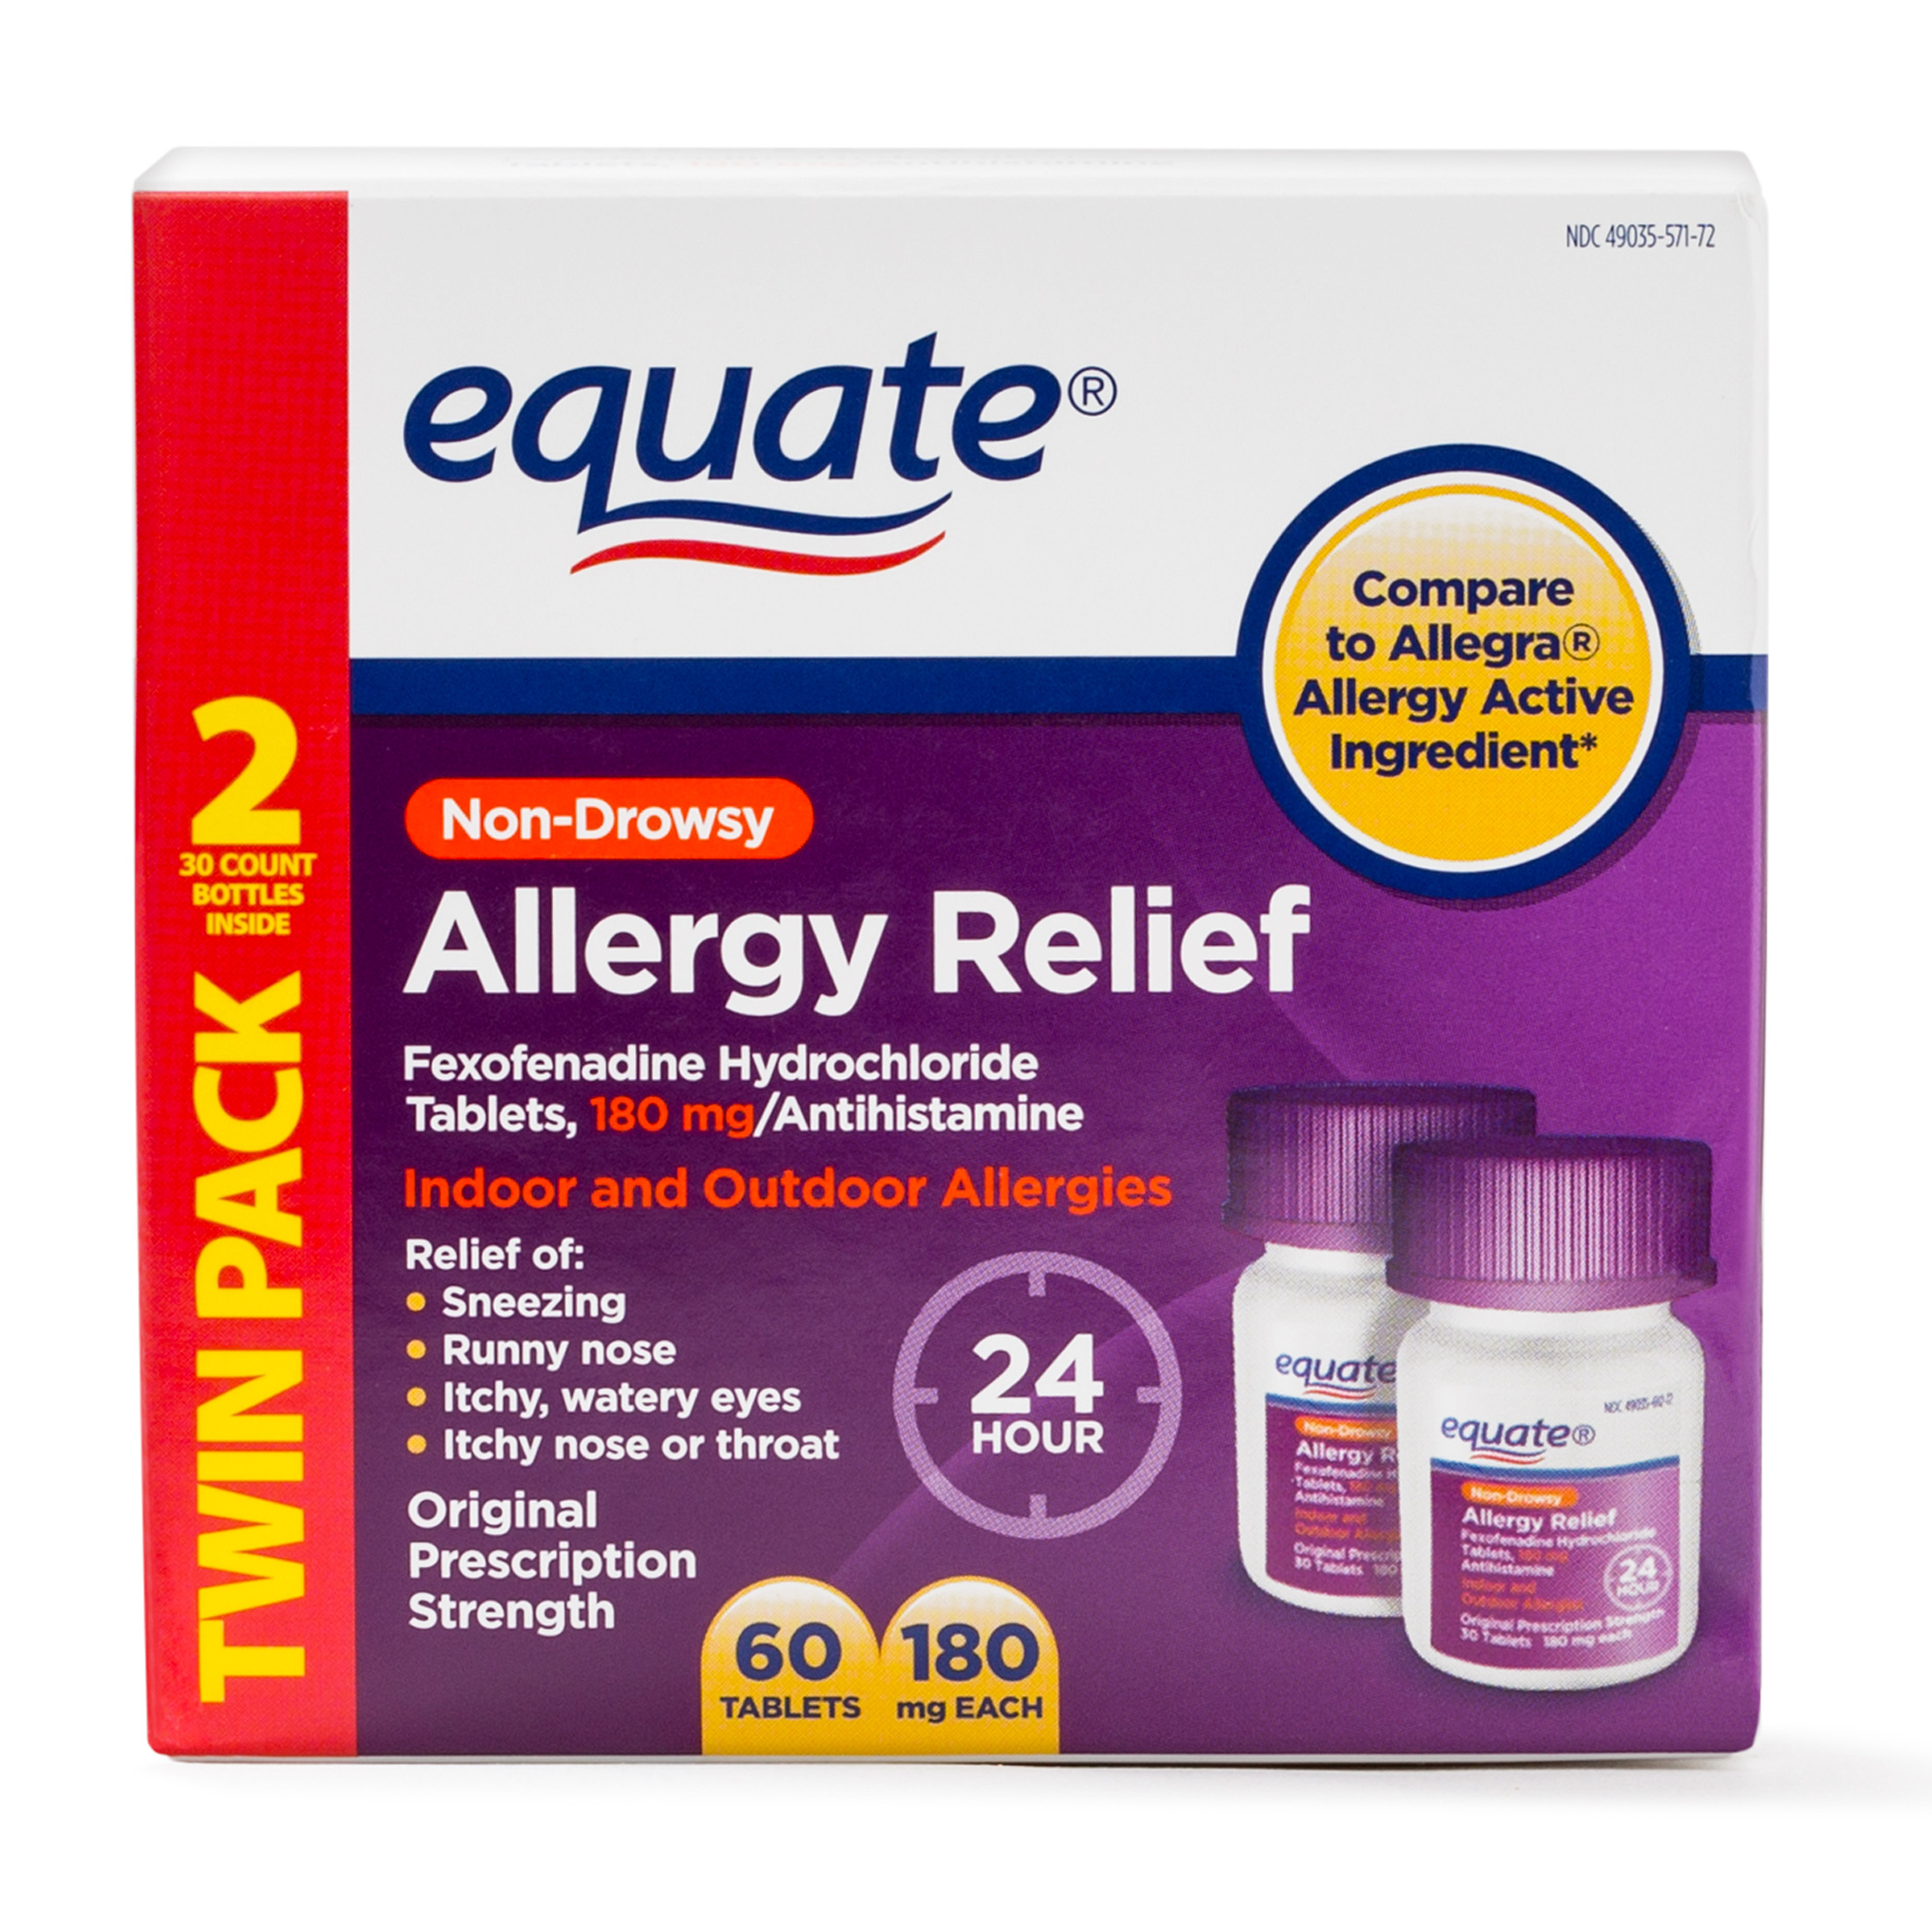 Equate Allergy Relief Fexofenadine Tablets, 180 mg, 60 tablets - Walmart.com at Walmart - Vision Center in Connersville, IN | Tuggl